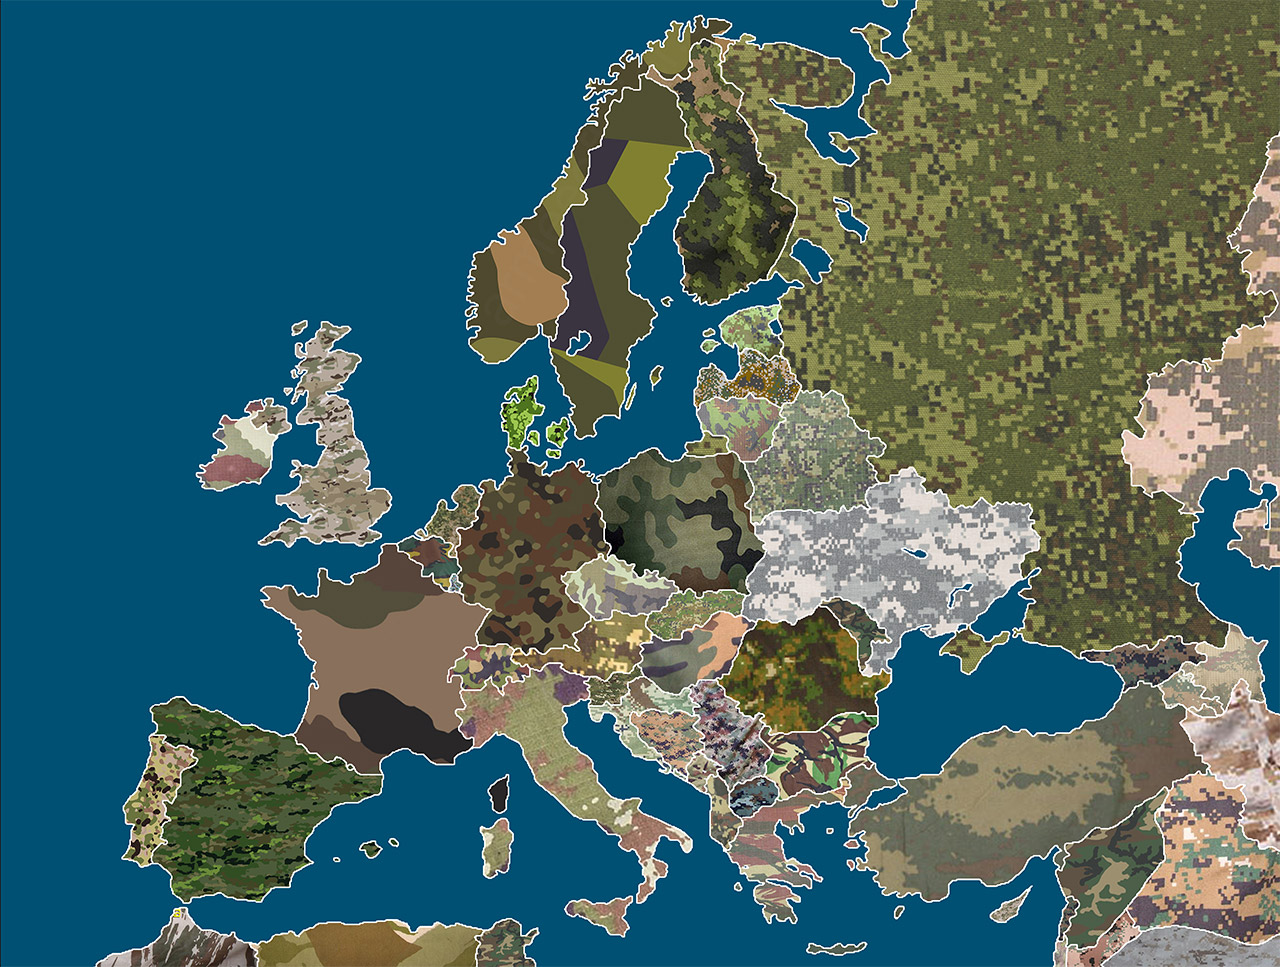 Camouflage patterns map of Europe.